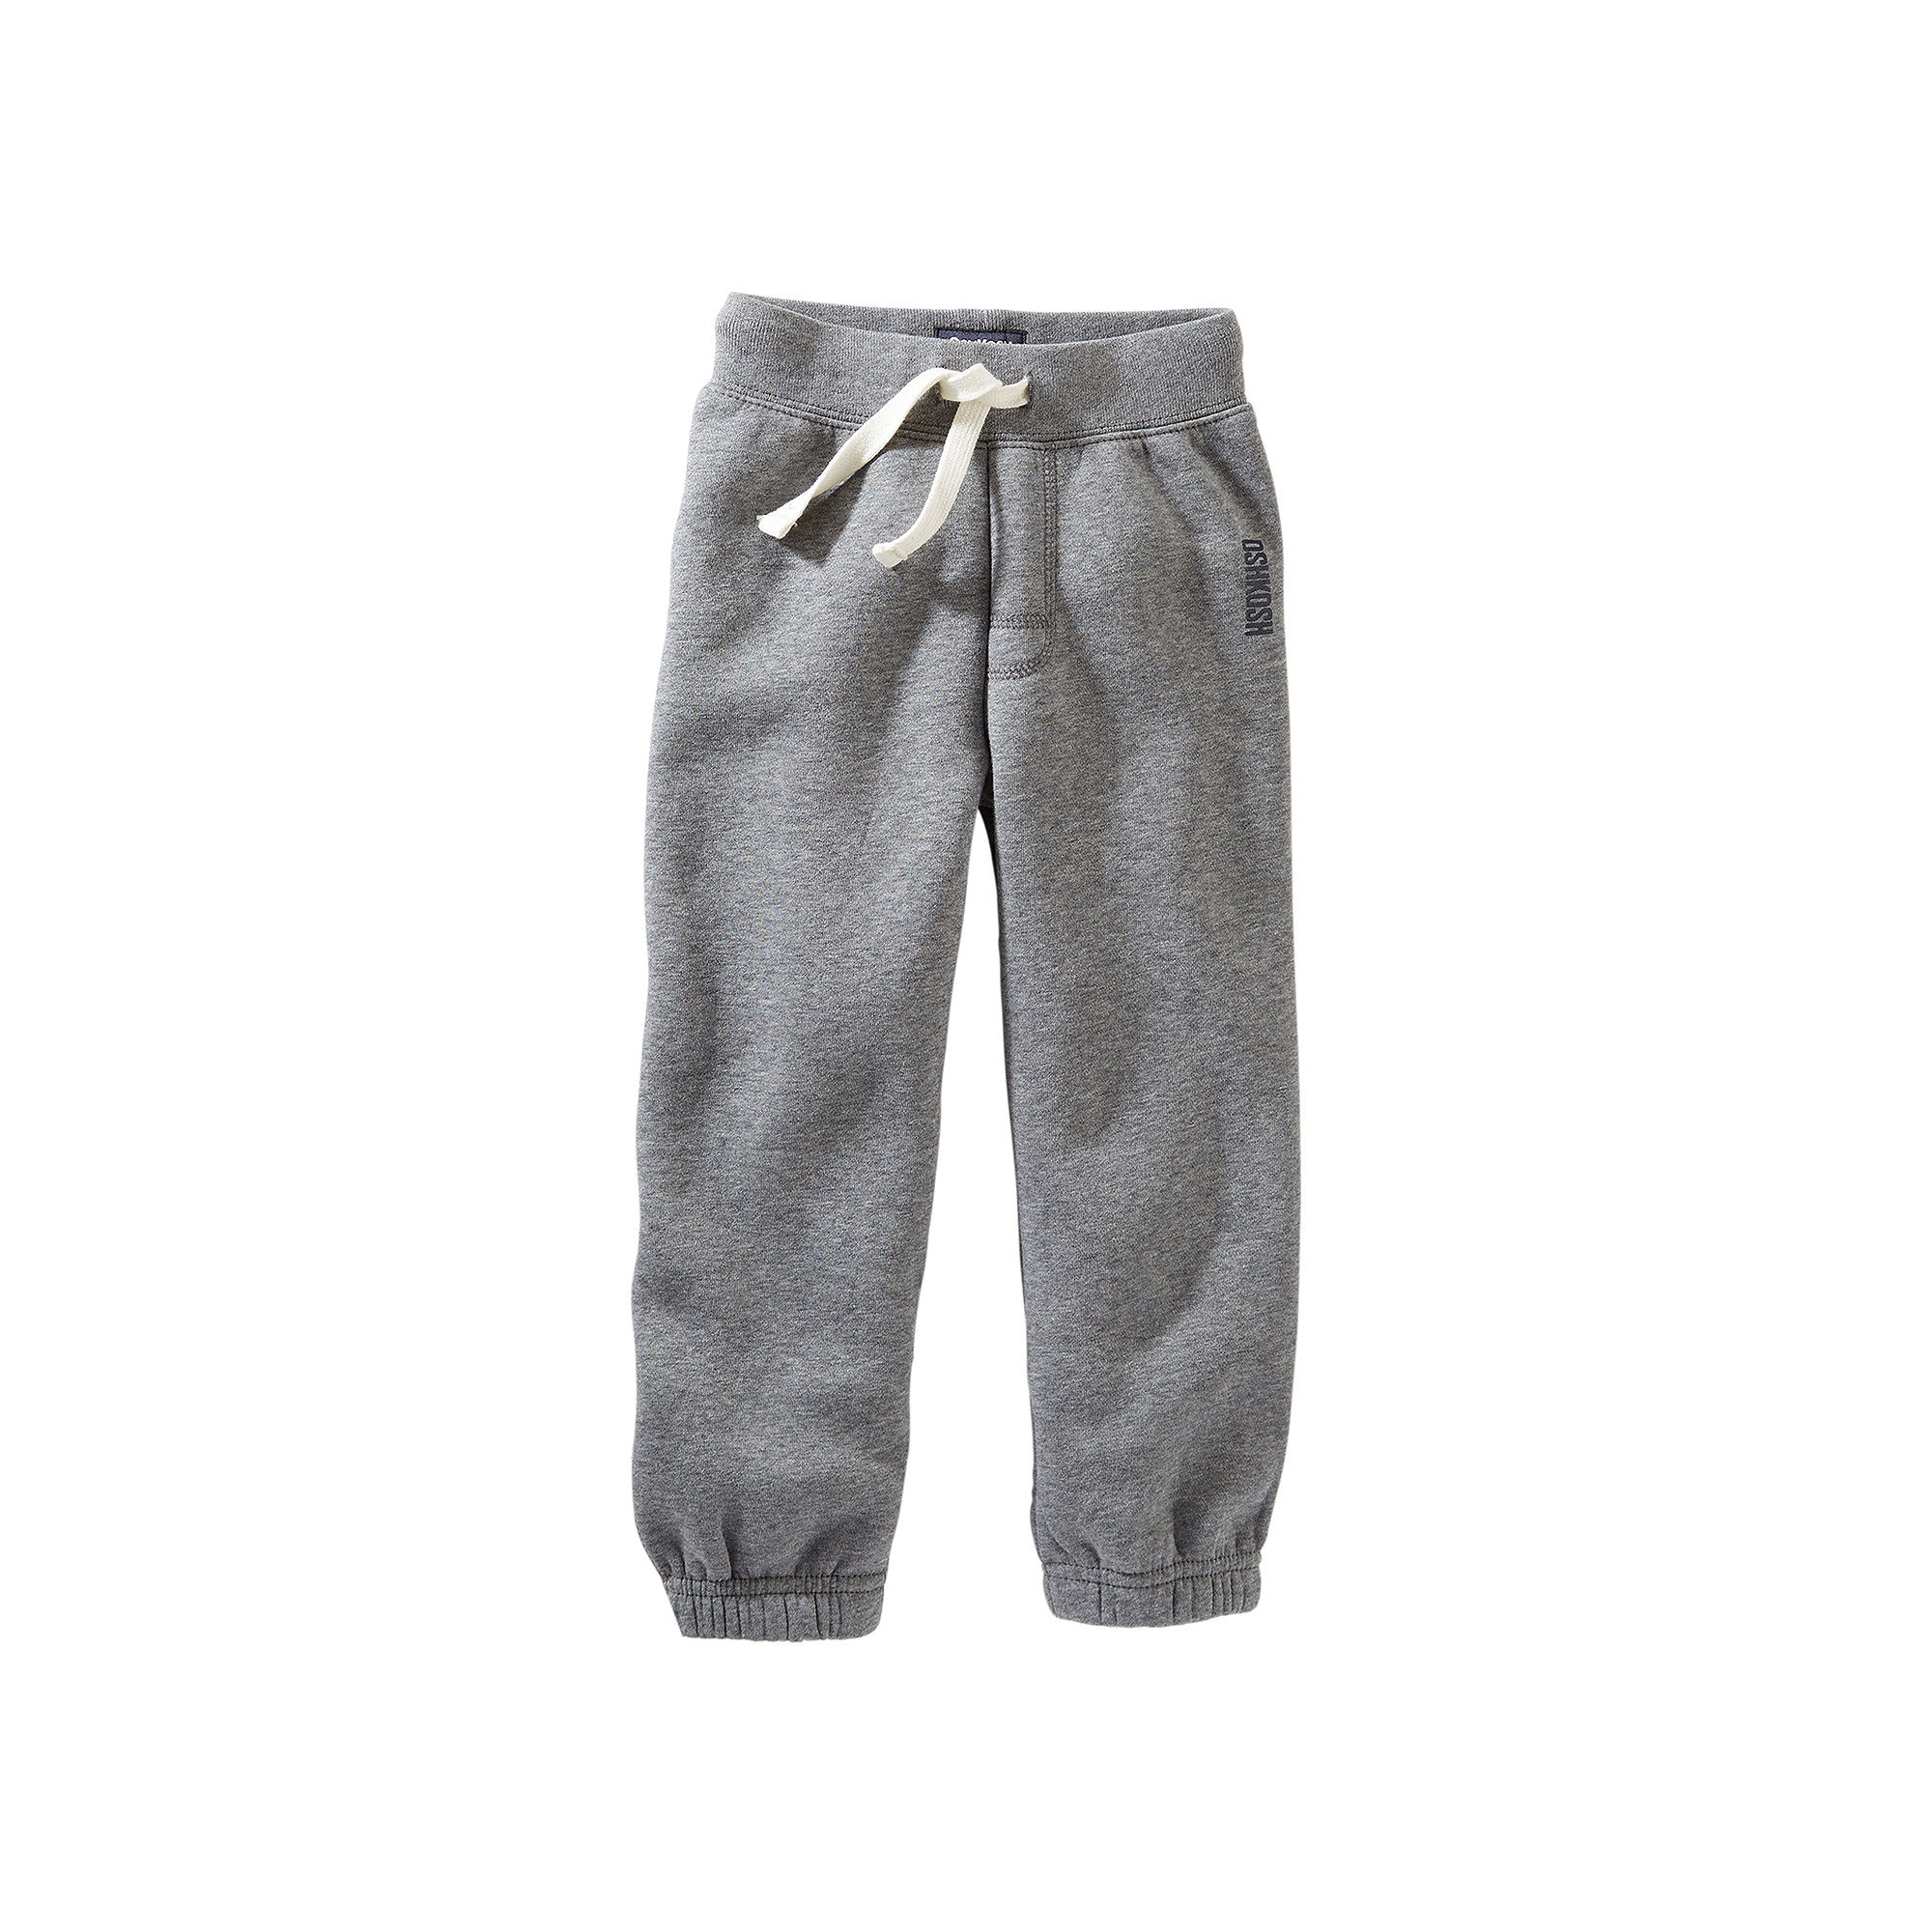 b56ac1a30 ... UPC 887044892590 product image for OshKosh B'gosh Jogger Pants -  Preschool Boy 4- ...